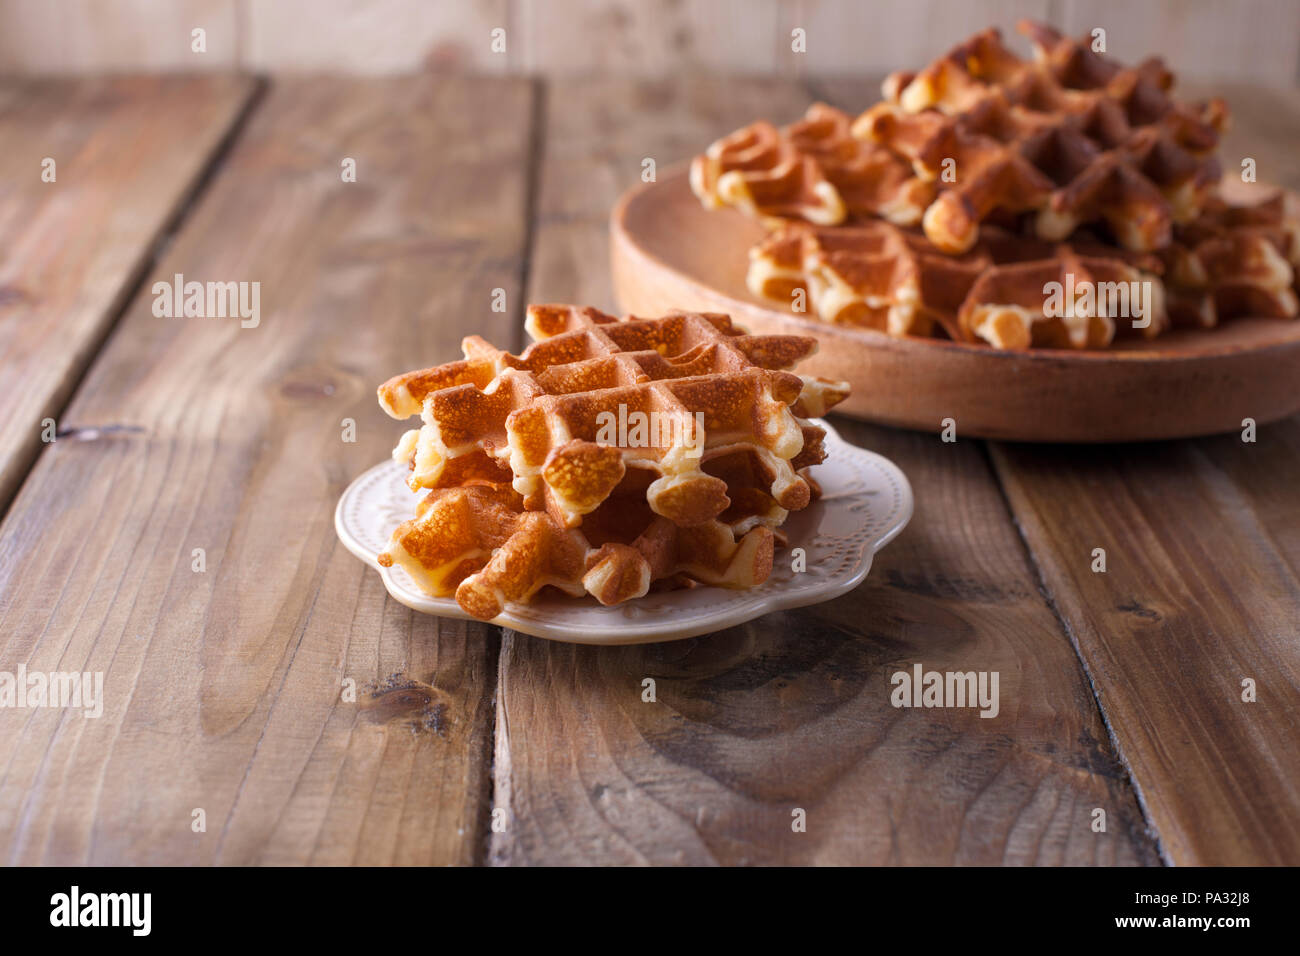 Sweet Belgian waffles for breakfast, on a wooden plate. On a brown wooden background. - Stock Image